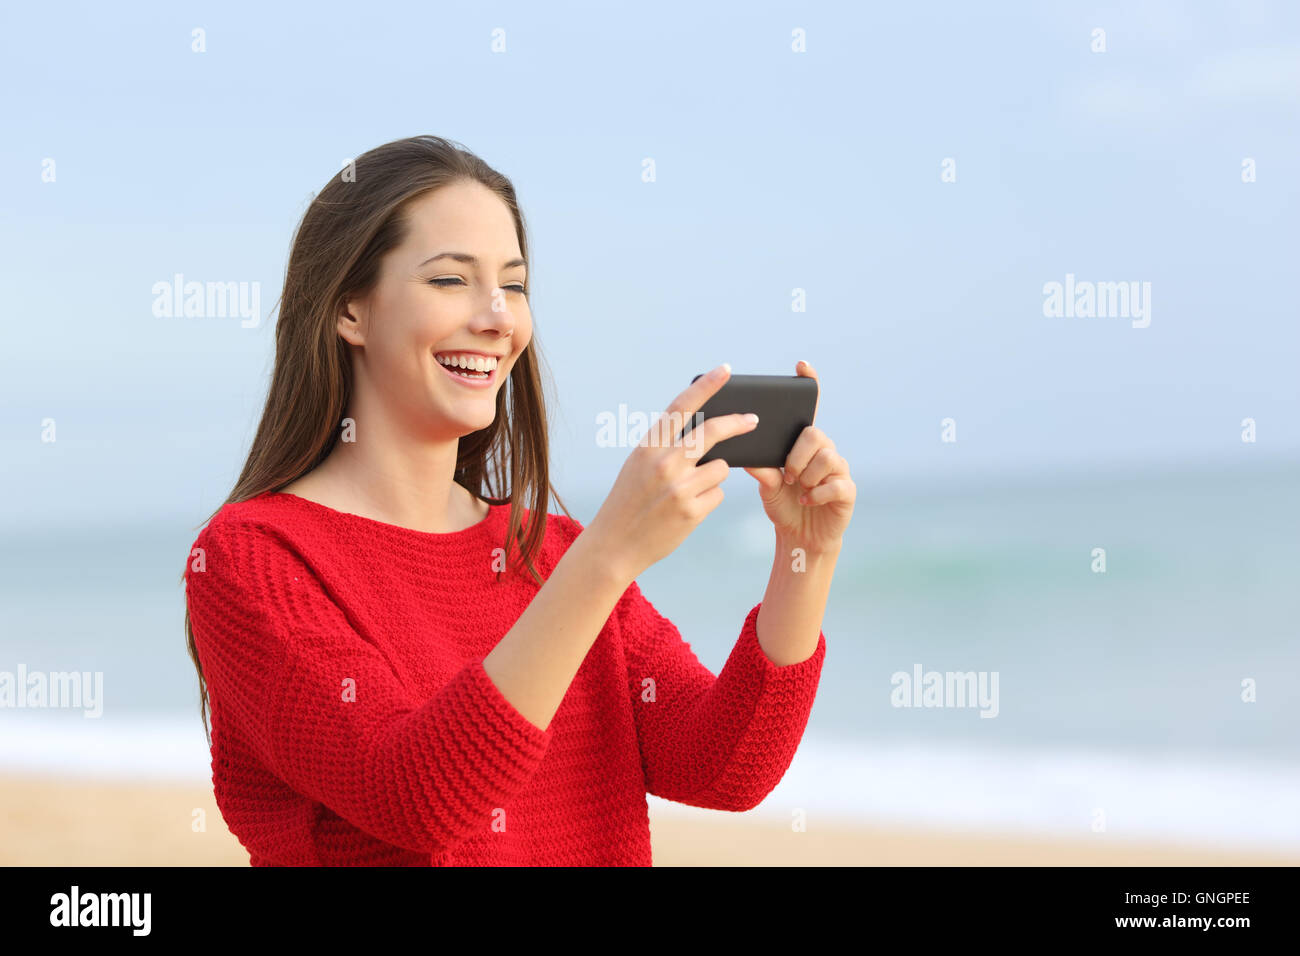 Portrait of a happy girl wearing red sweater laughing while watching streaming videos in smart phone on the beach - Stock Image